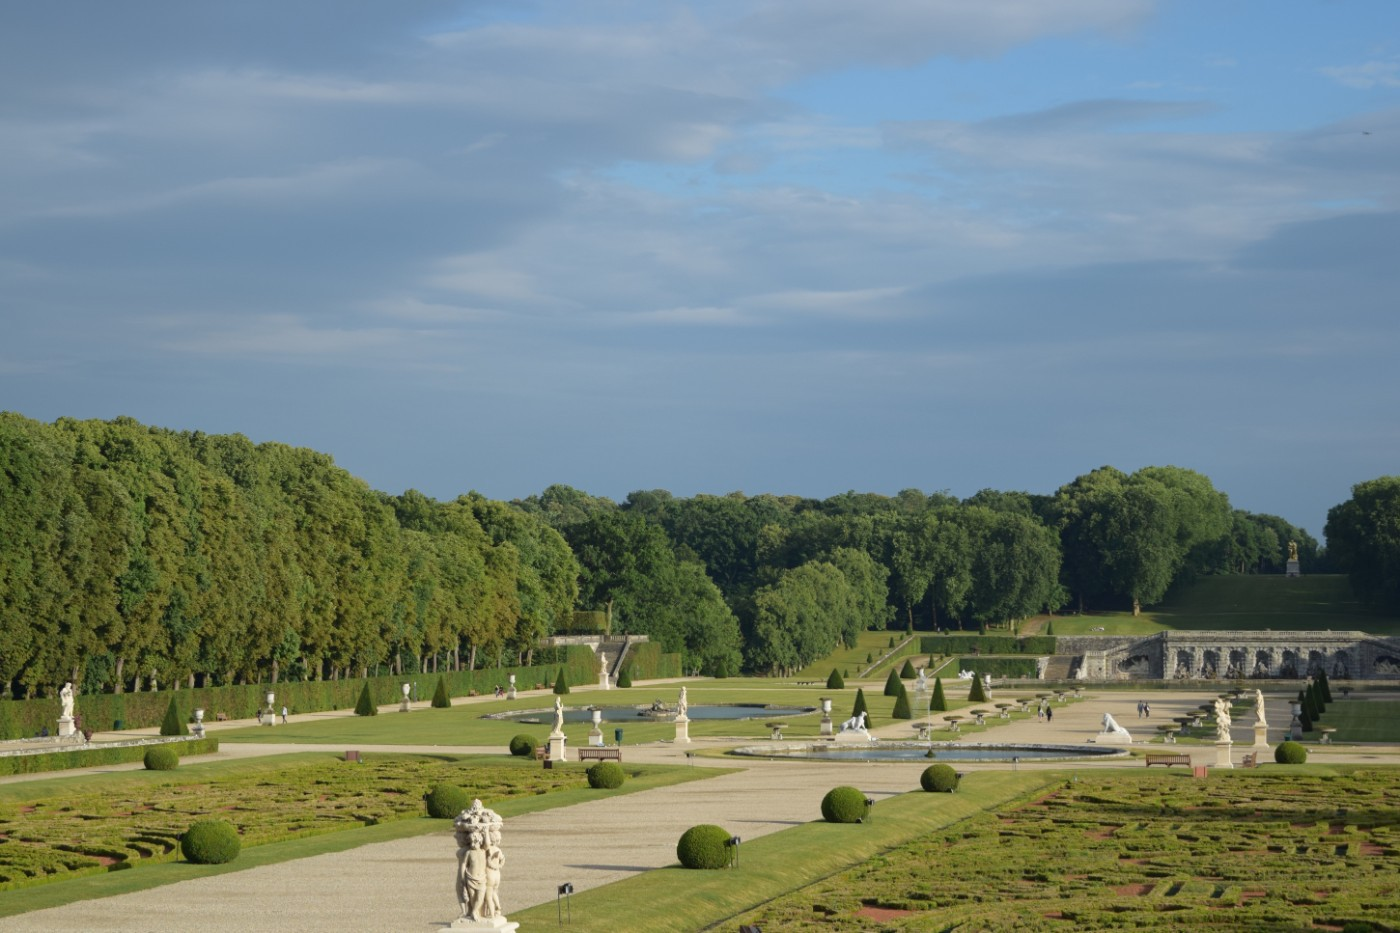 The statues, hedges, ponds, trees, alleys, and grotto of the grounds of the Château de Vaux-le-Vicomte.